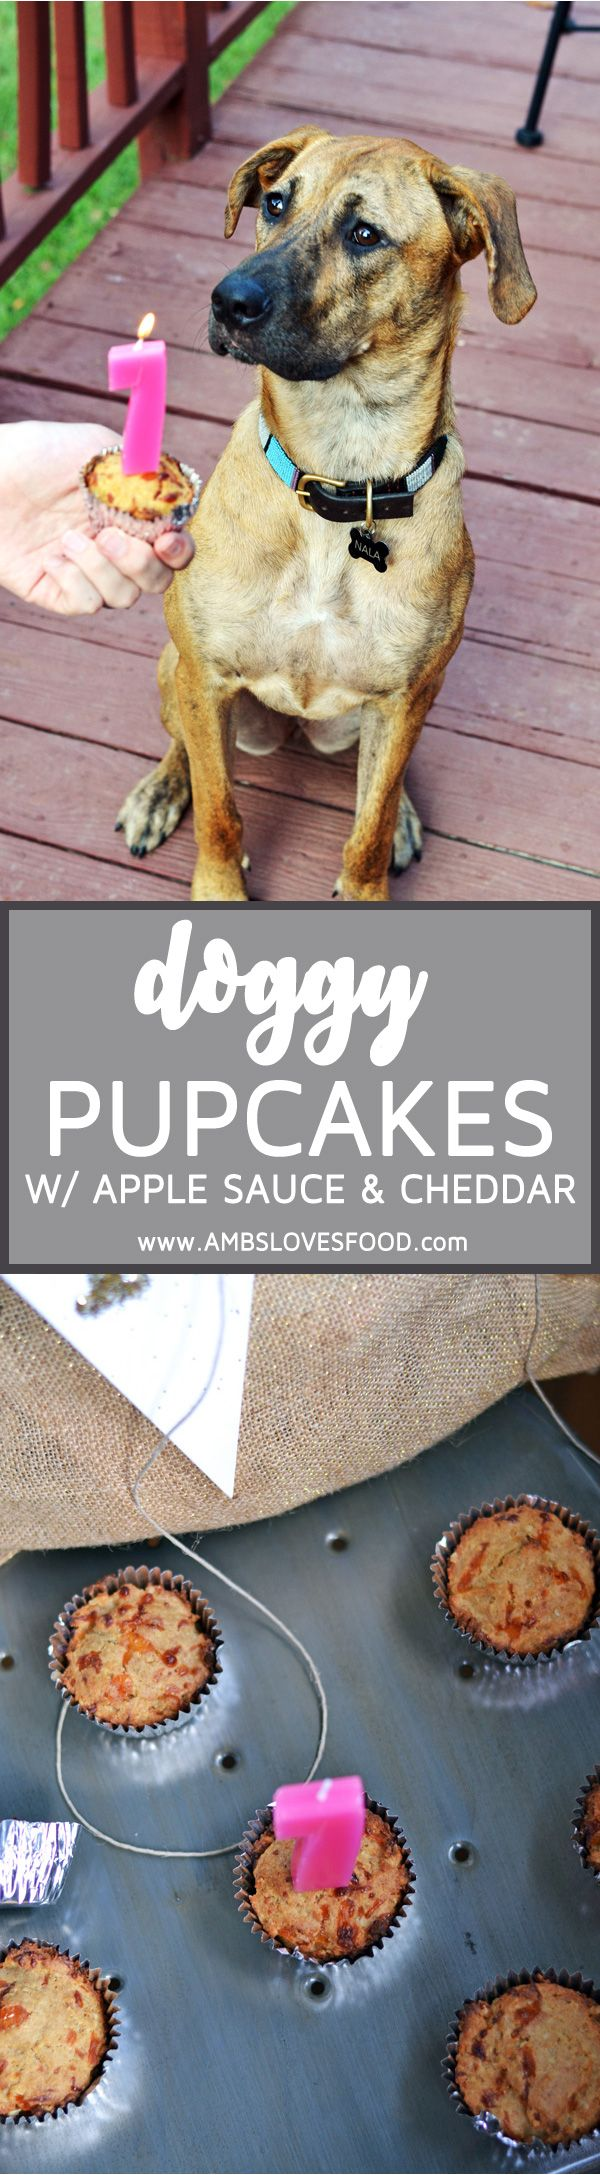 Nala turned ONE last month and to celebrate we did ALL of her favorite things on her birthday and I made her these Dog Pupcakes with Applesauce and Cheddar as her birthday cake! I think it was the best day she has ever had in her whole year on this earth and she couldn't get